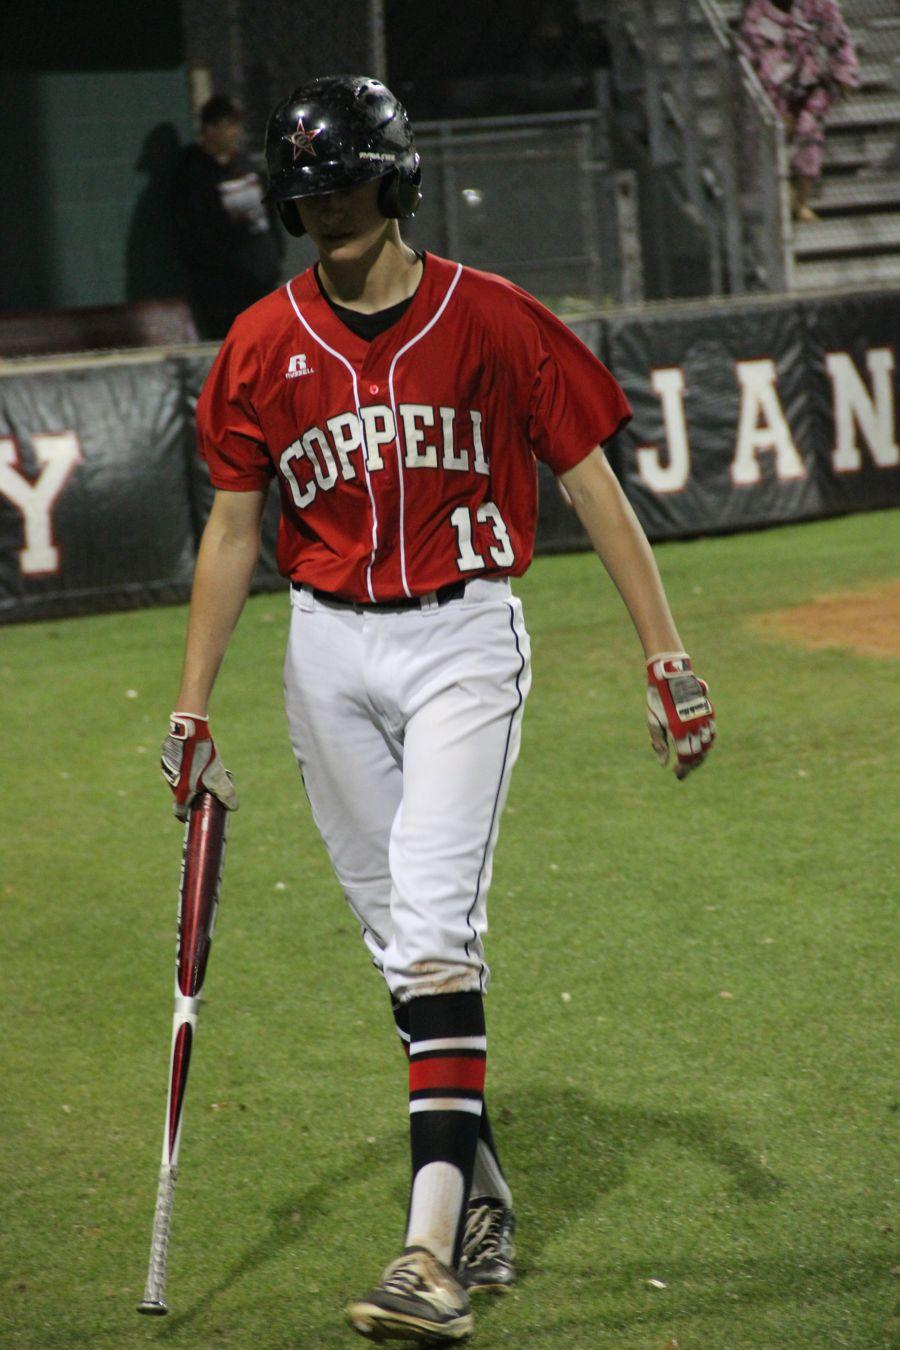 Coppell+High+School+sophomore+Rye+Gunter+walks+up+to+bat+at+the+game+against+Trinity.+Coppell+won+8-2+against+Trinity+on+Monday+at+Trinity+High+School.%0A+%0A